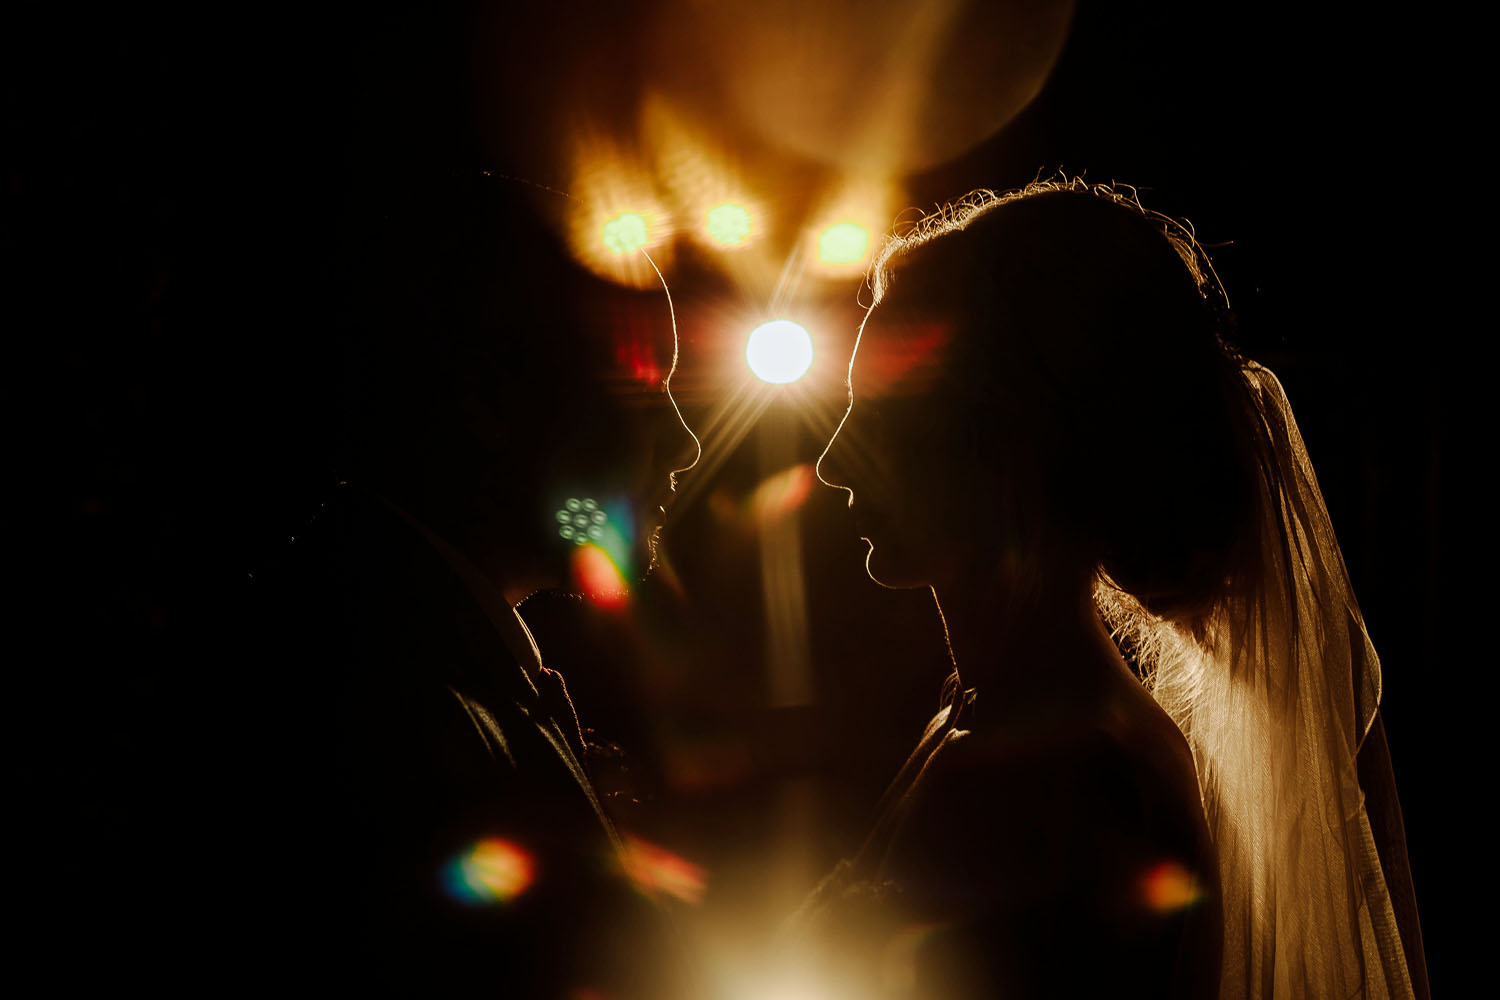 bride and groom creative silhouette with golden light and sparkles